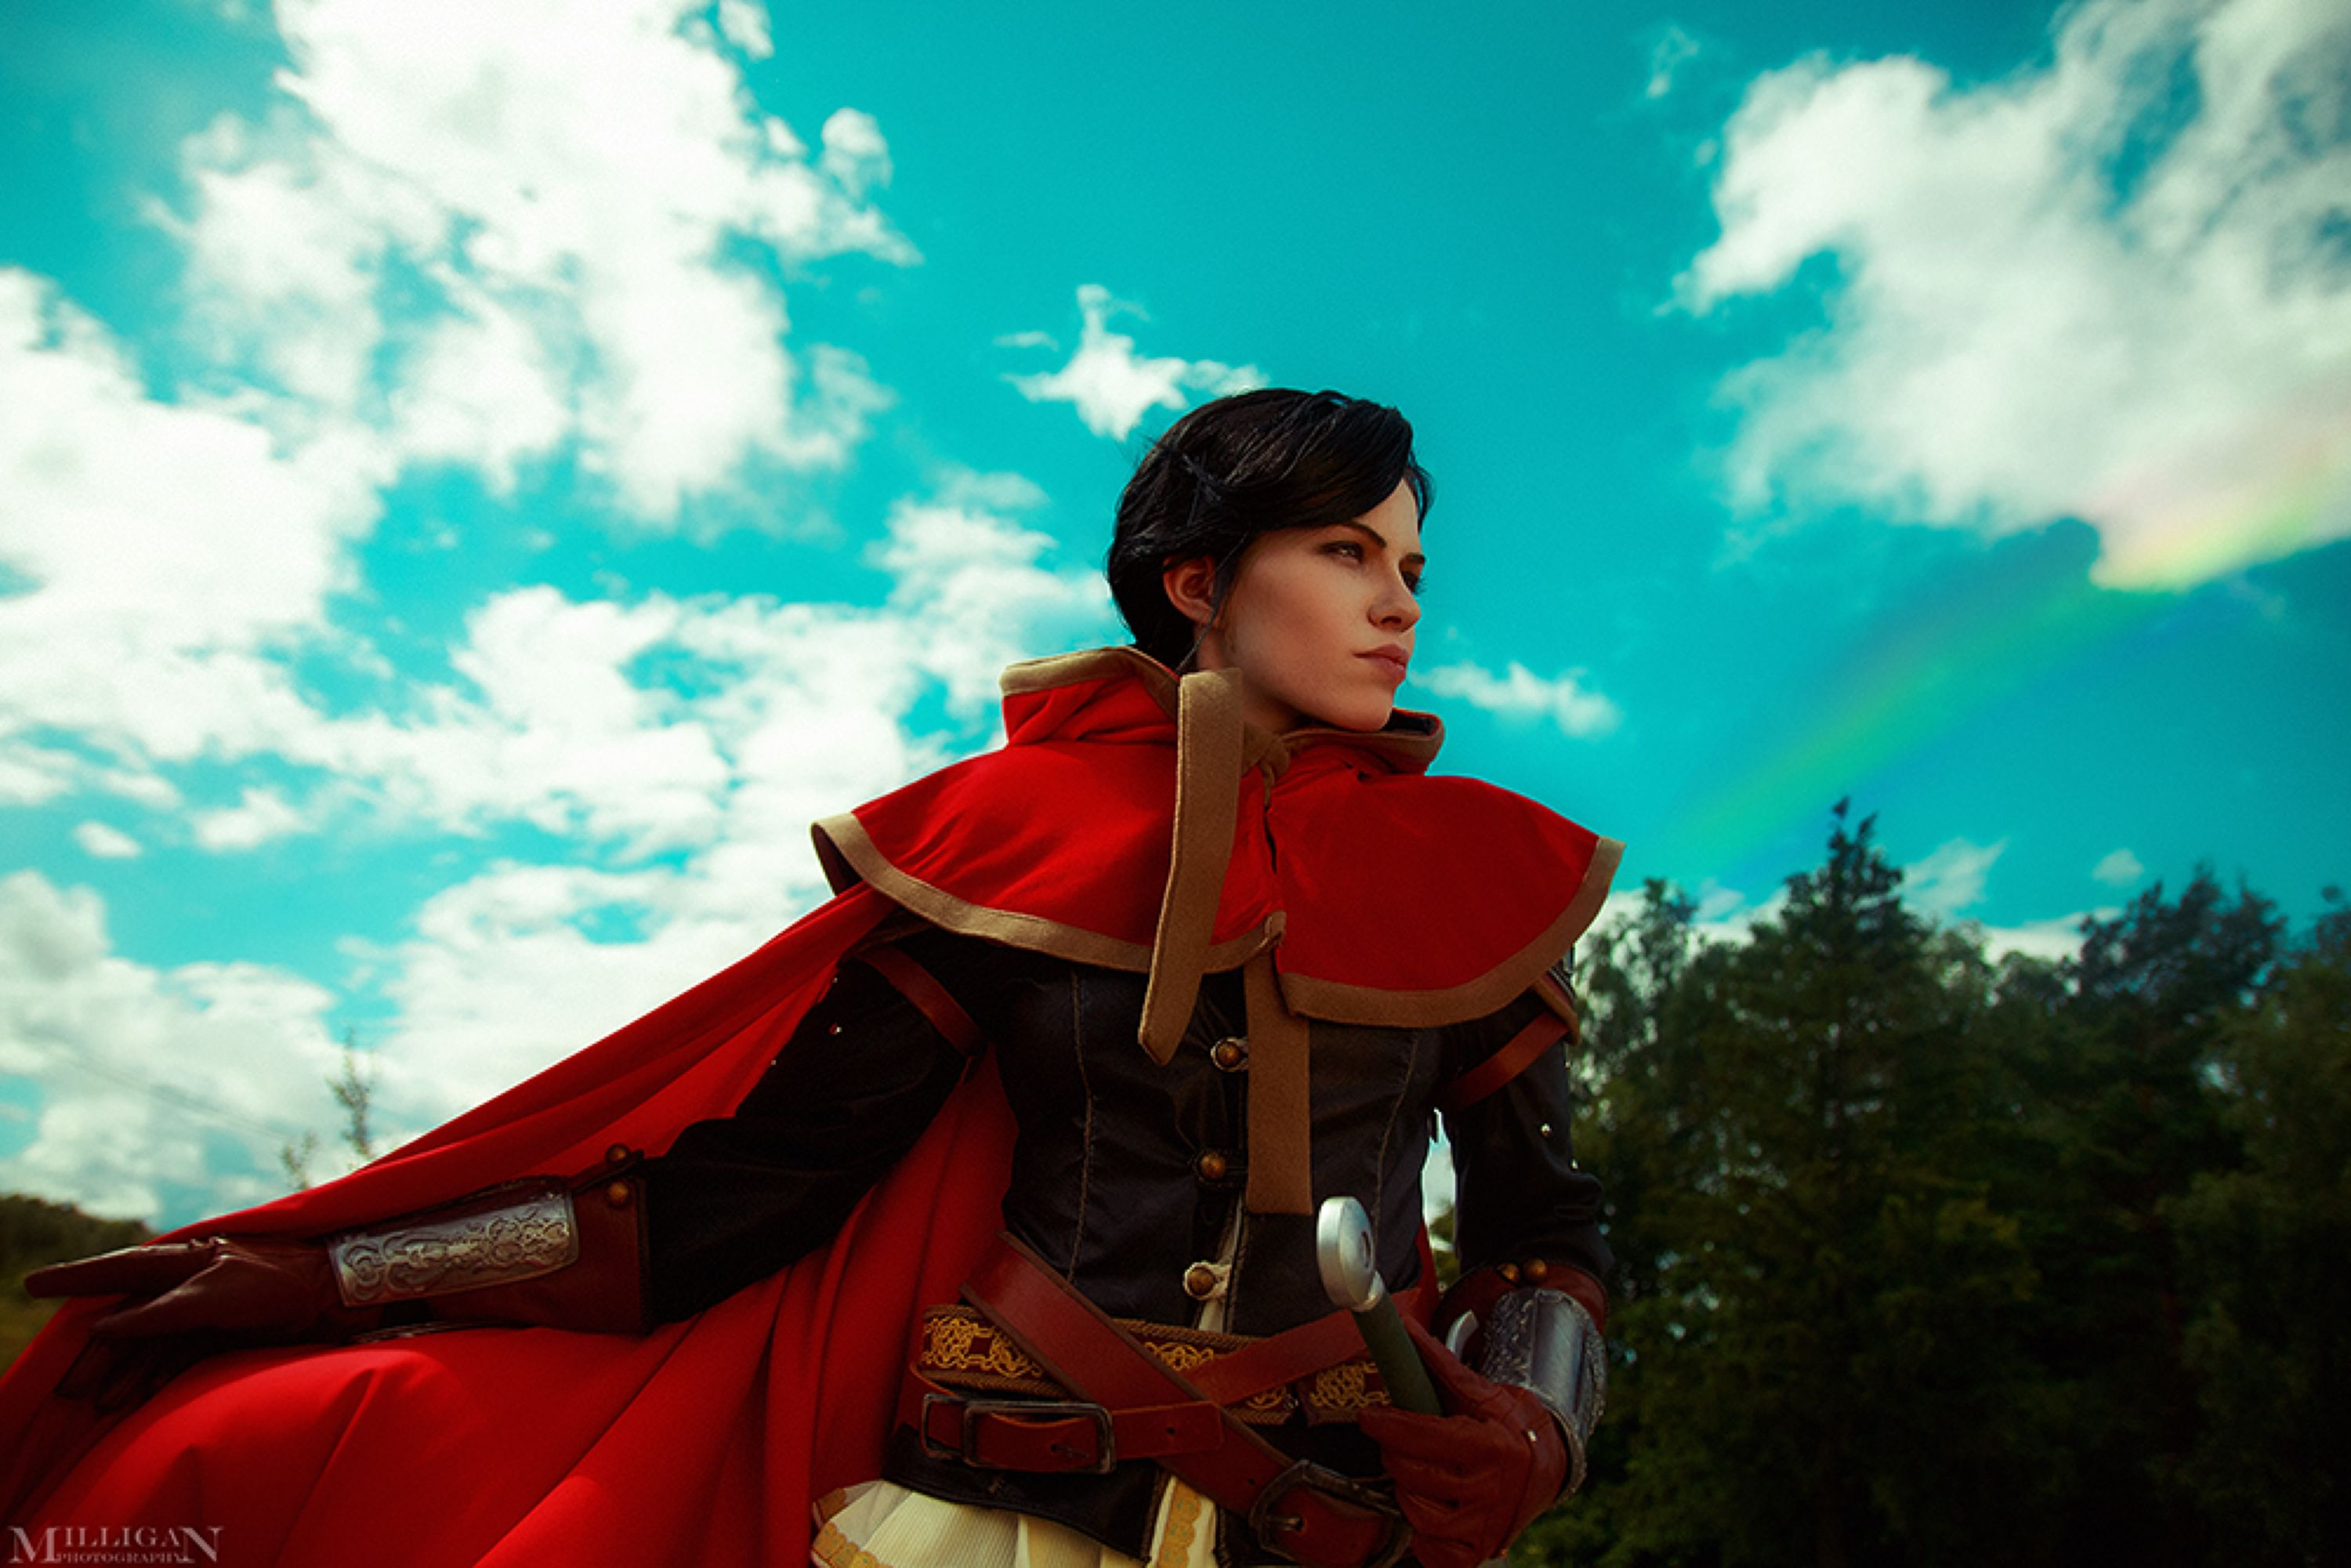 Tw Wh Syanna Fairytale By Milliganvick On Deviantart The Witcher The Witcher 3 Wild Hunt